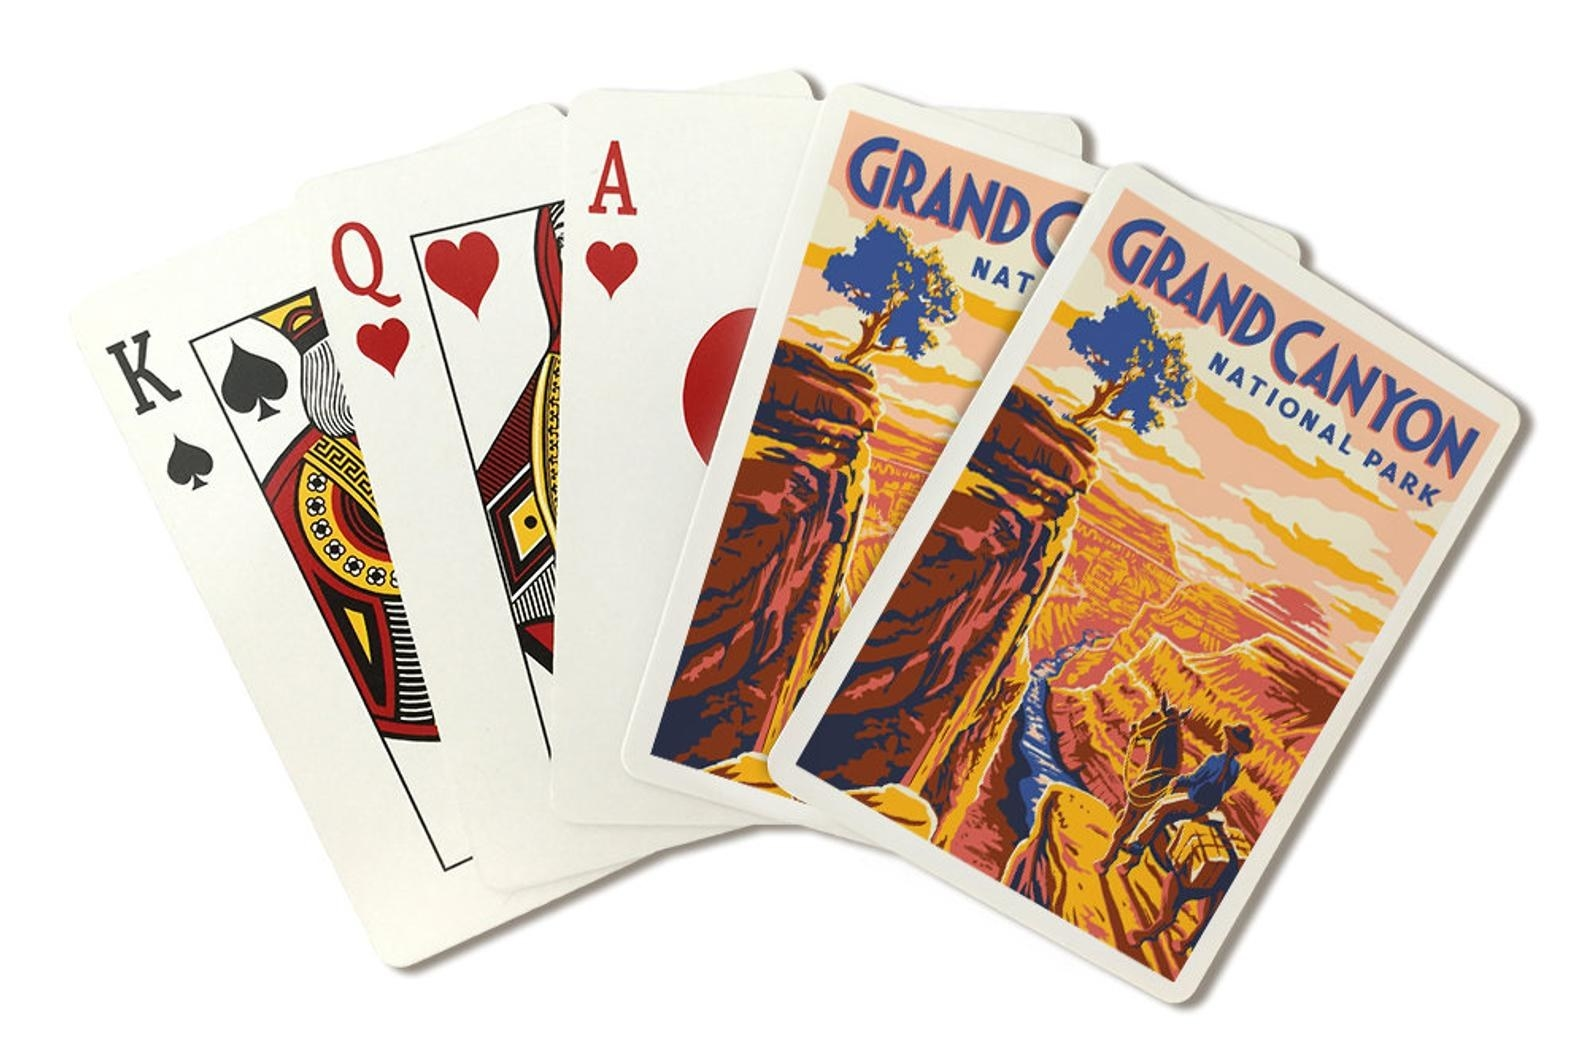 The pack of playing cards with one card showing an illustrated image of the Grand Canyon National Park